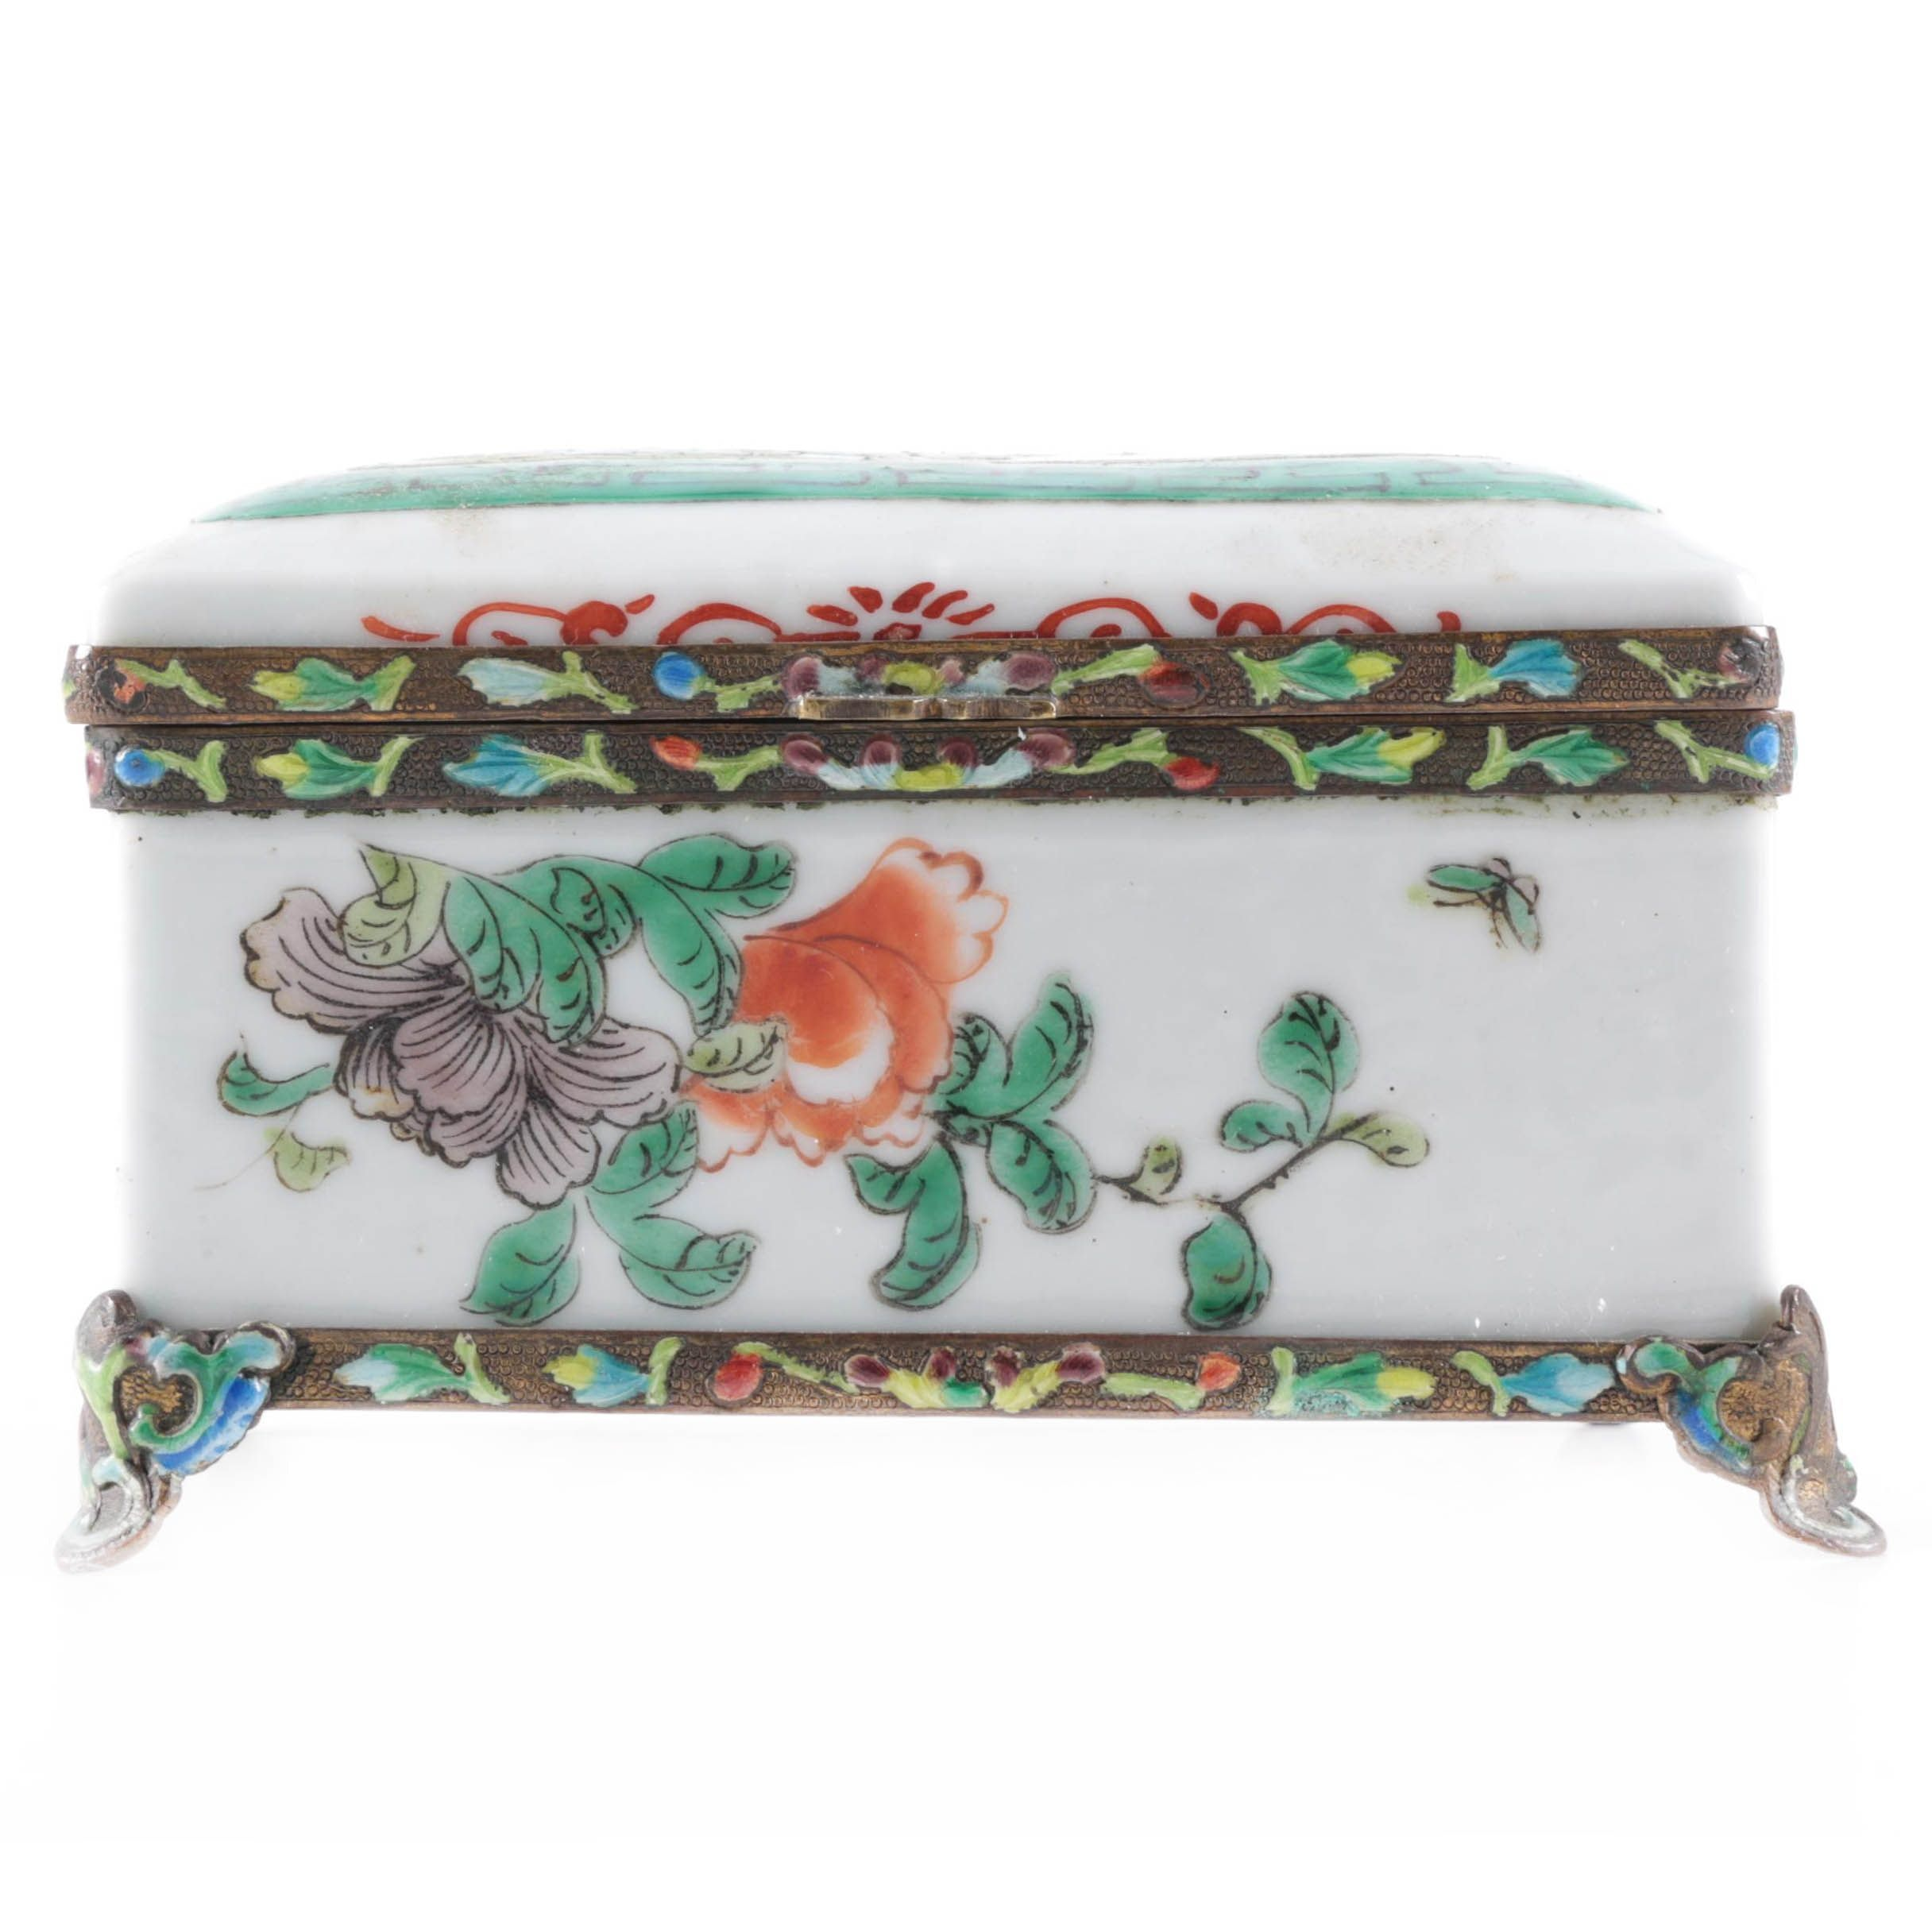 Chinese Porcelain and Metal Lidded Box